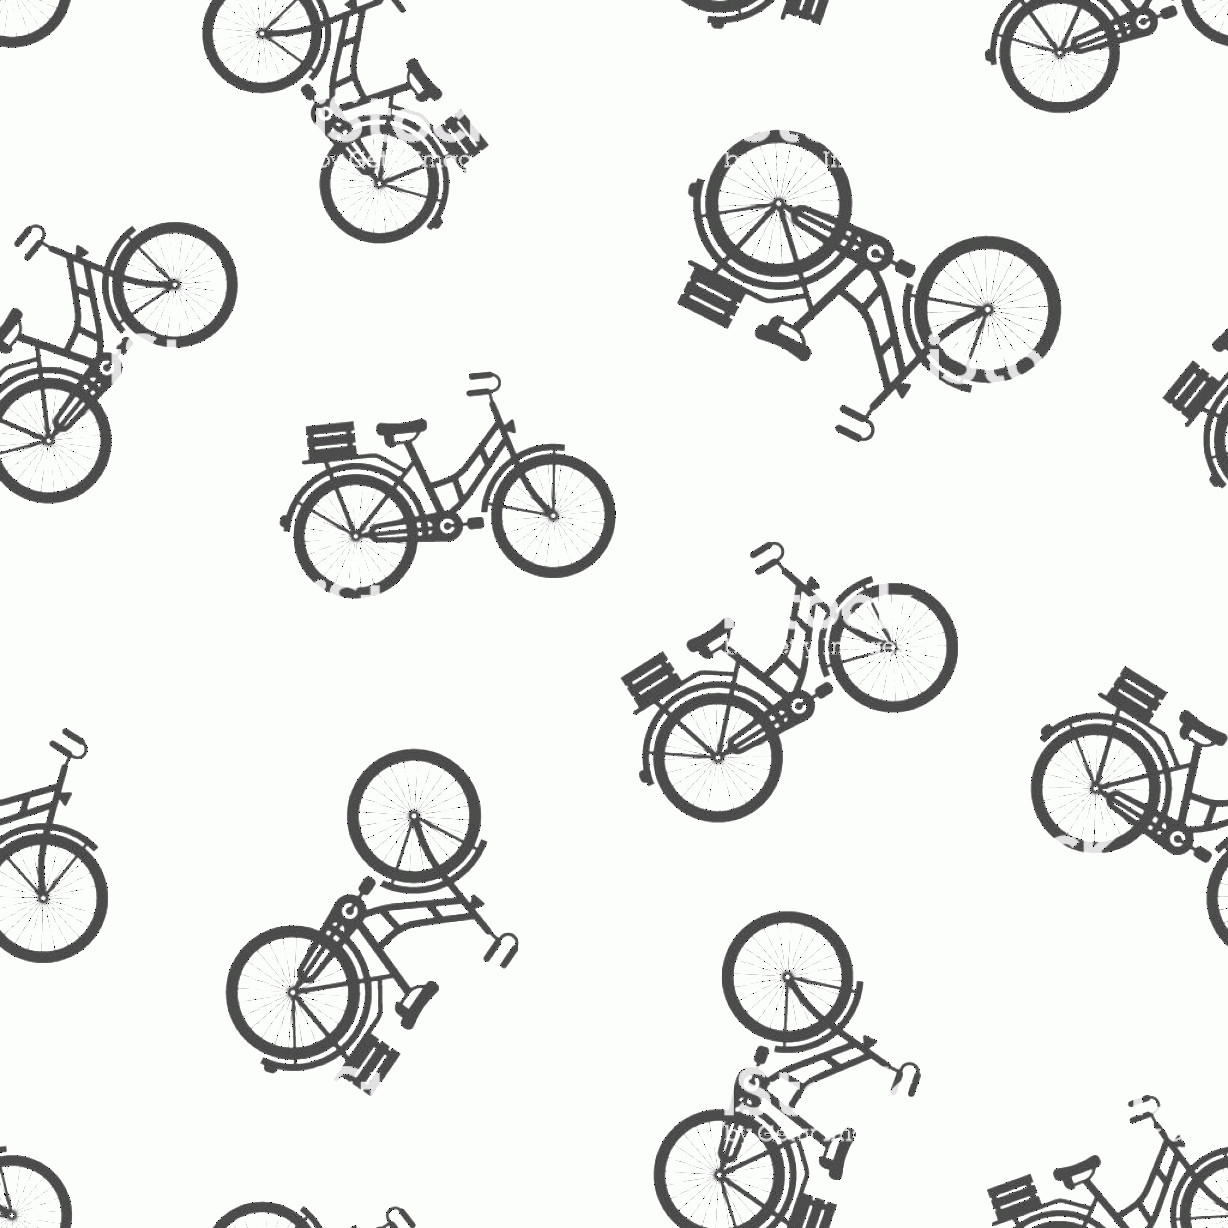 Bicycle Vector Artwork Of Patterns: Bicycle Sign Icon Seamless Pattern Background Bike Vector Illustration On White Gm